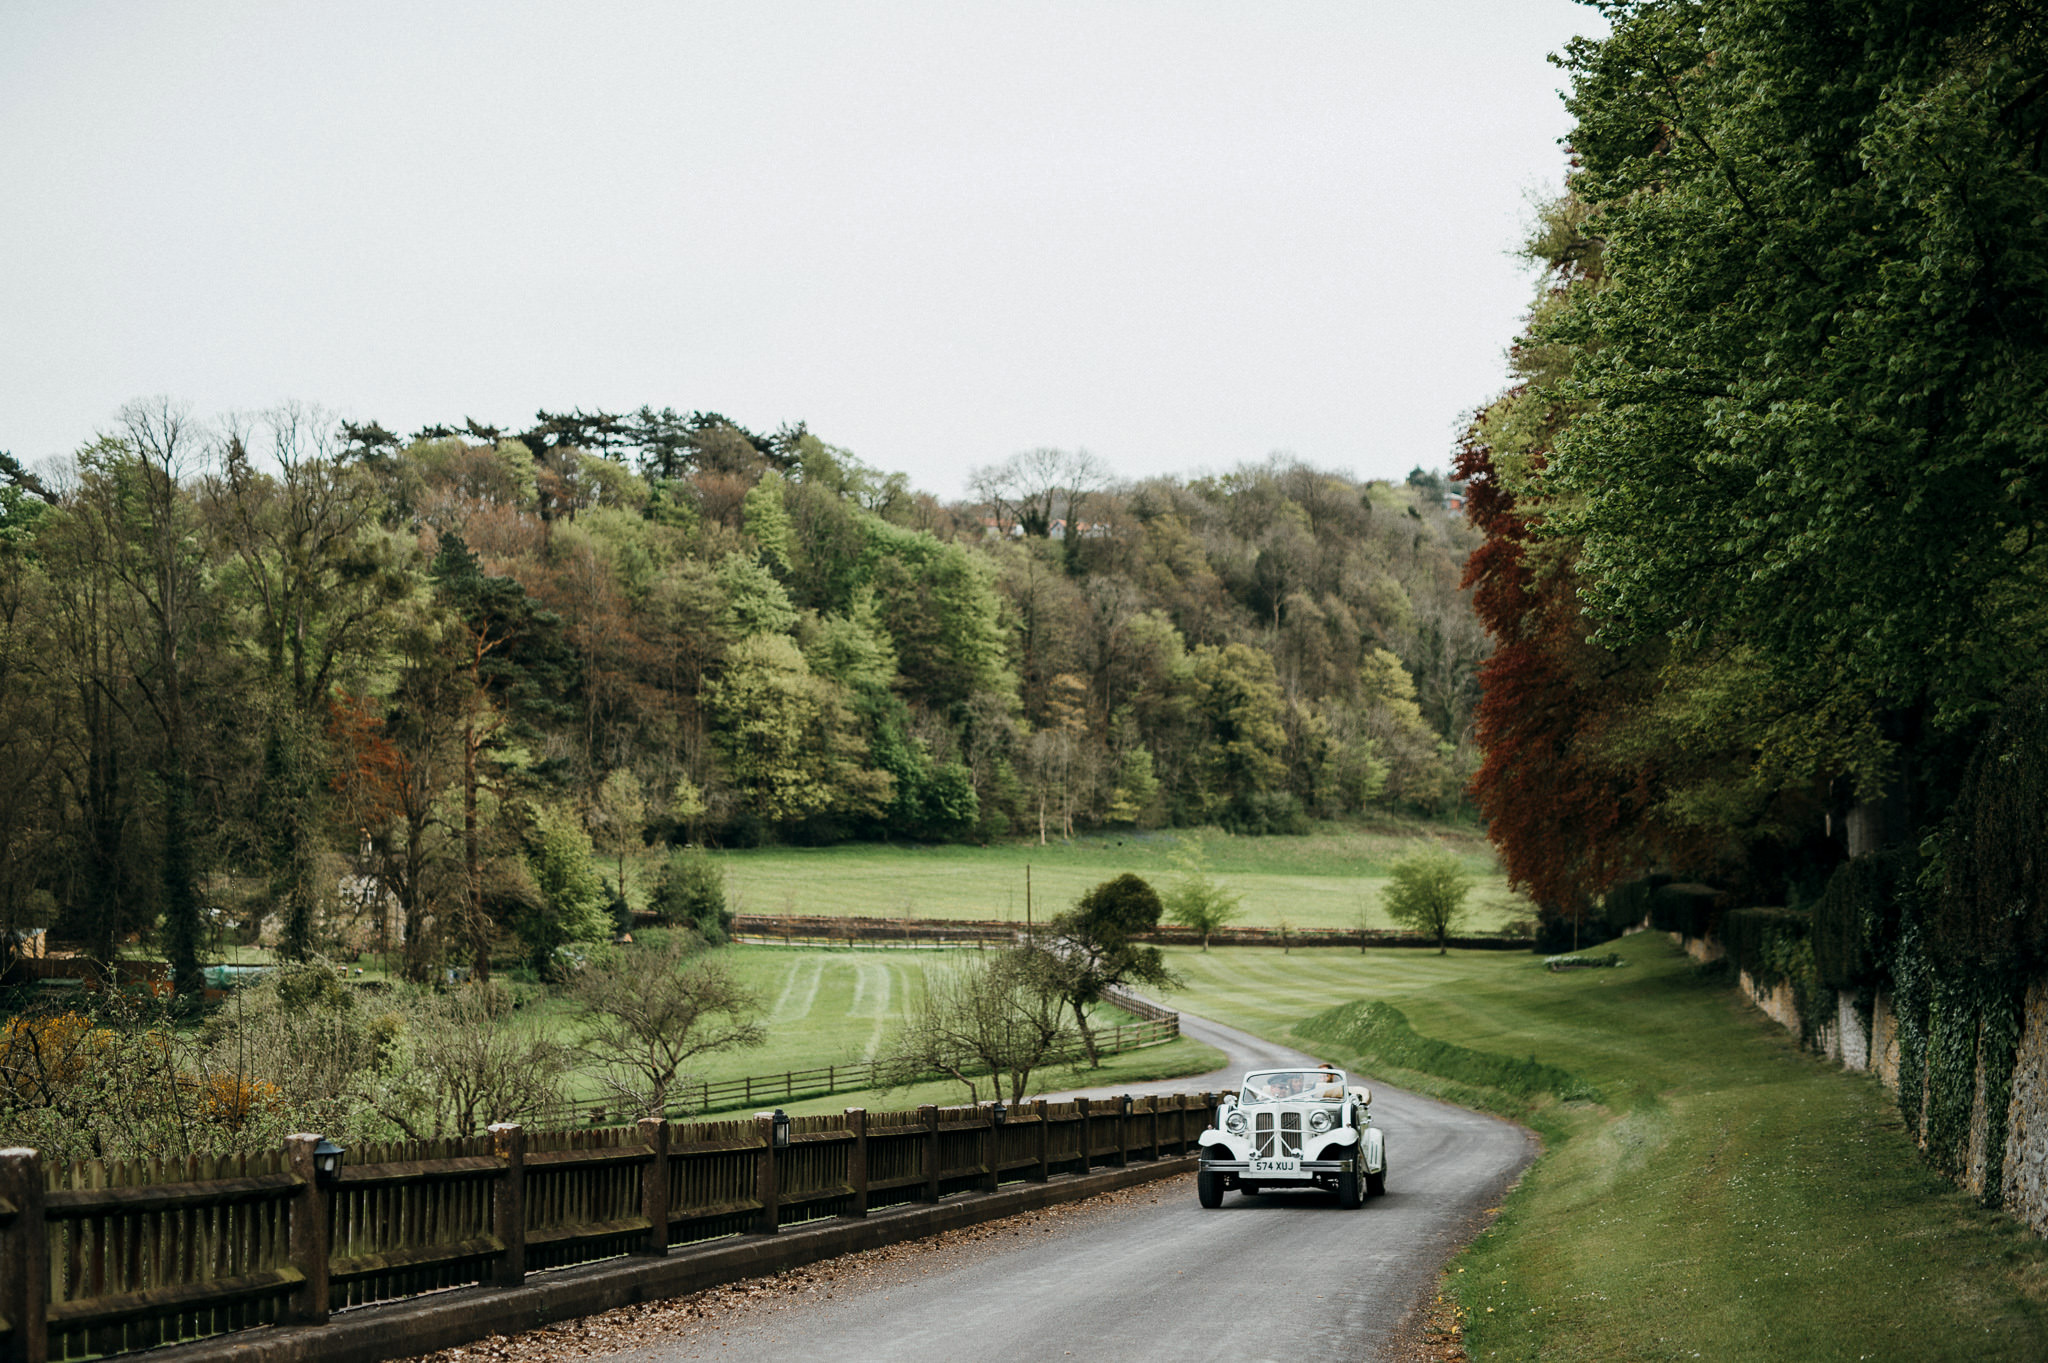 Newlyweds arrive at Coombe lodge wedding venue